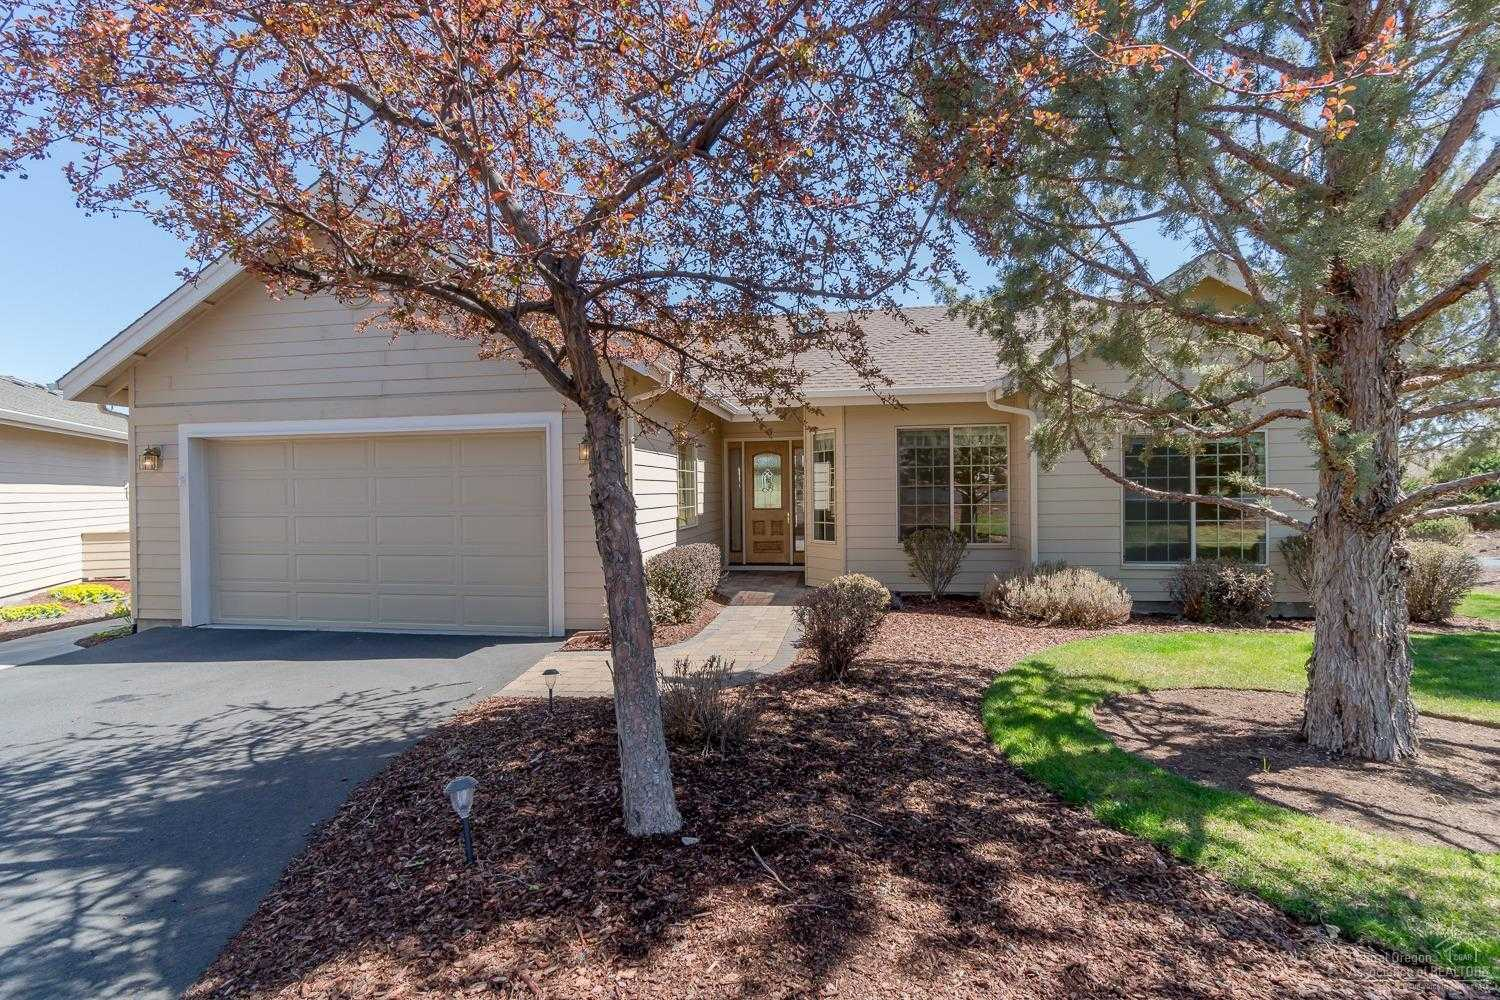 $449,000 - 2Br/2Ba -  for Sale in The Falls, Redmond